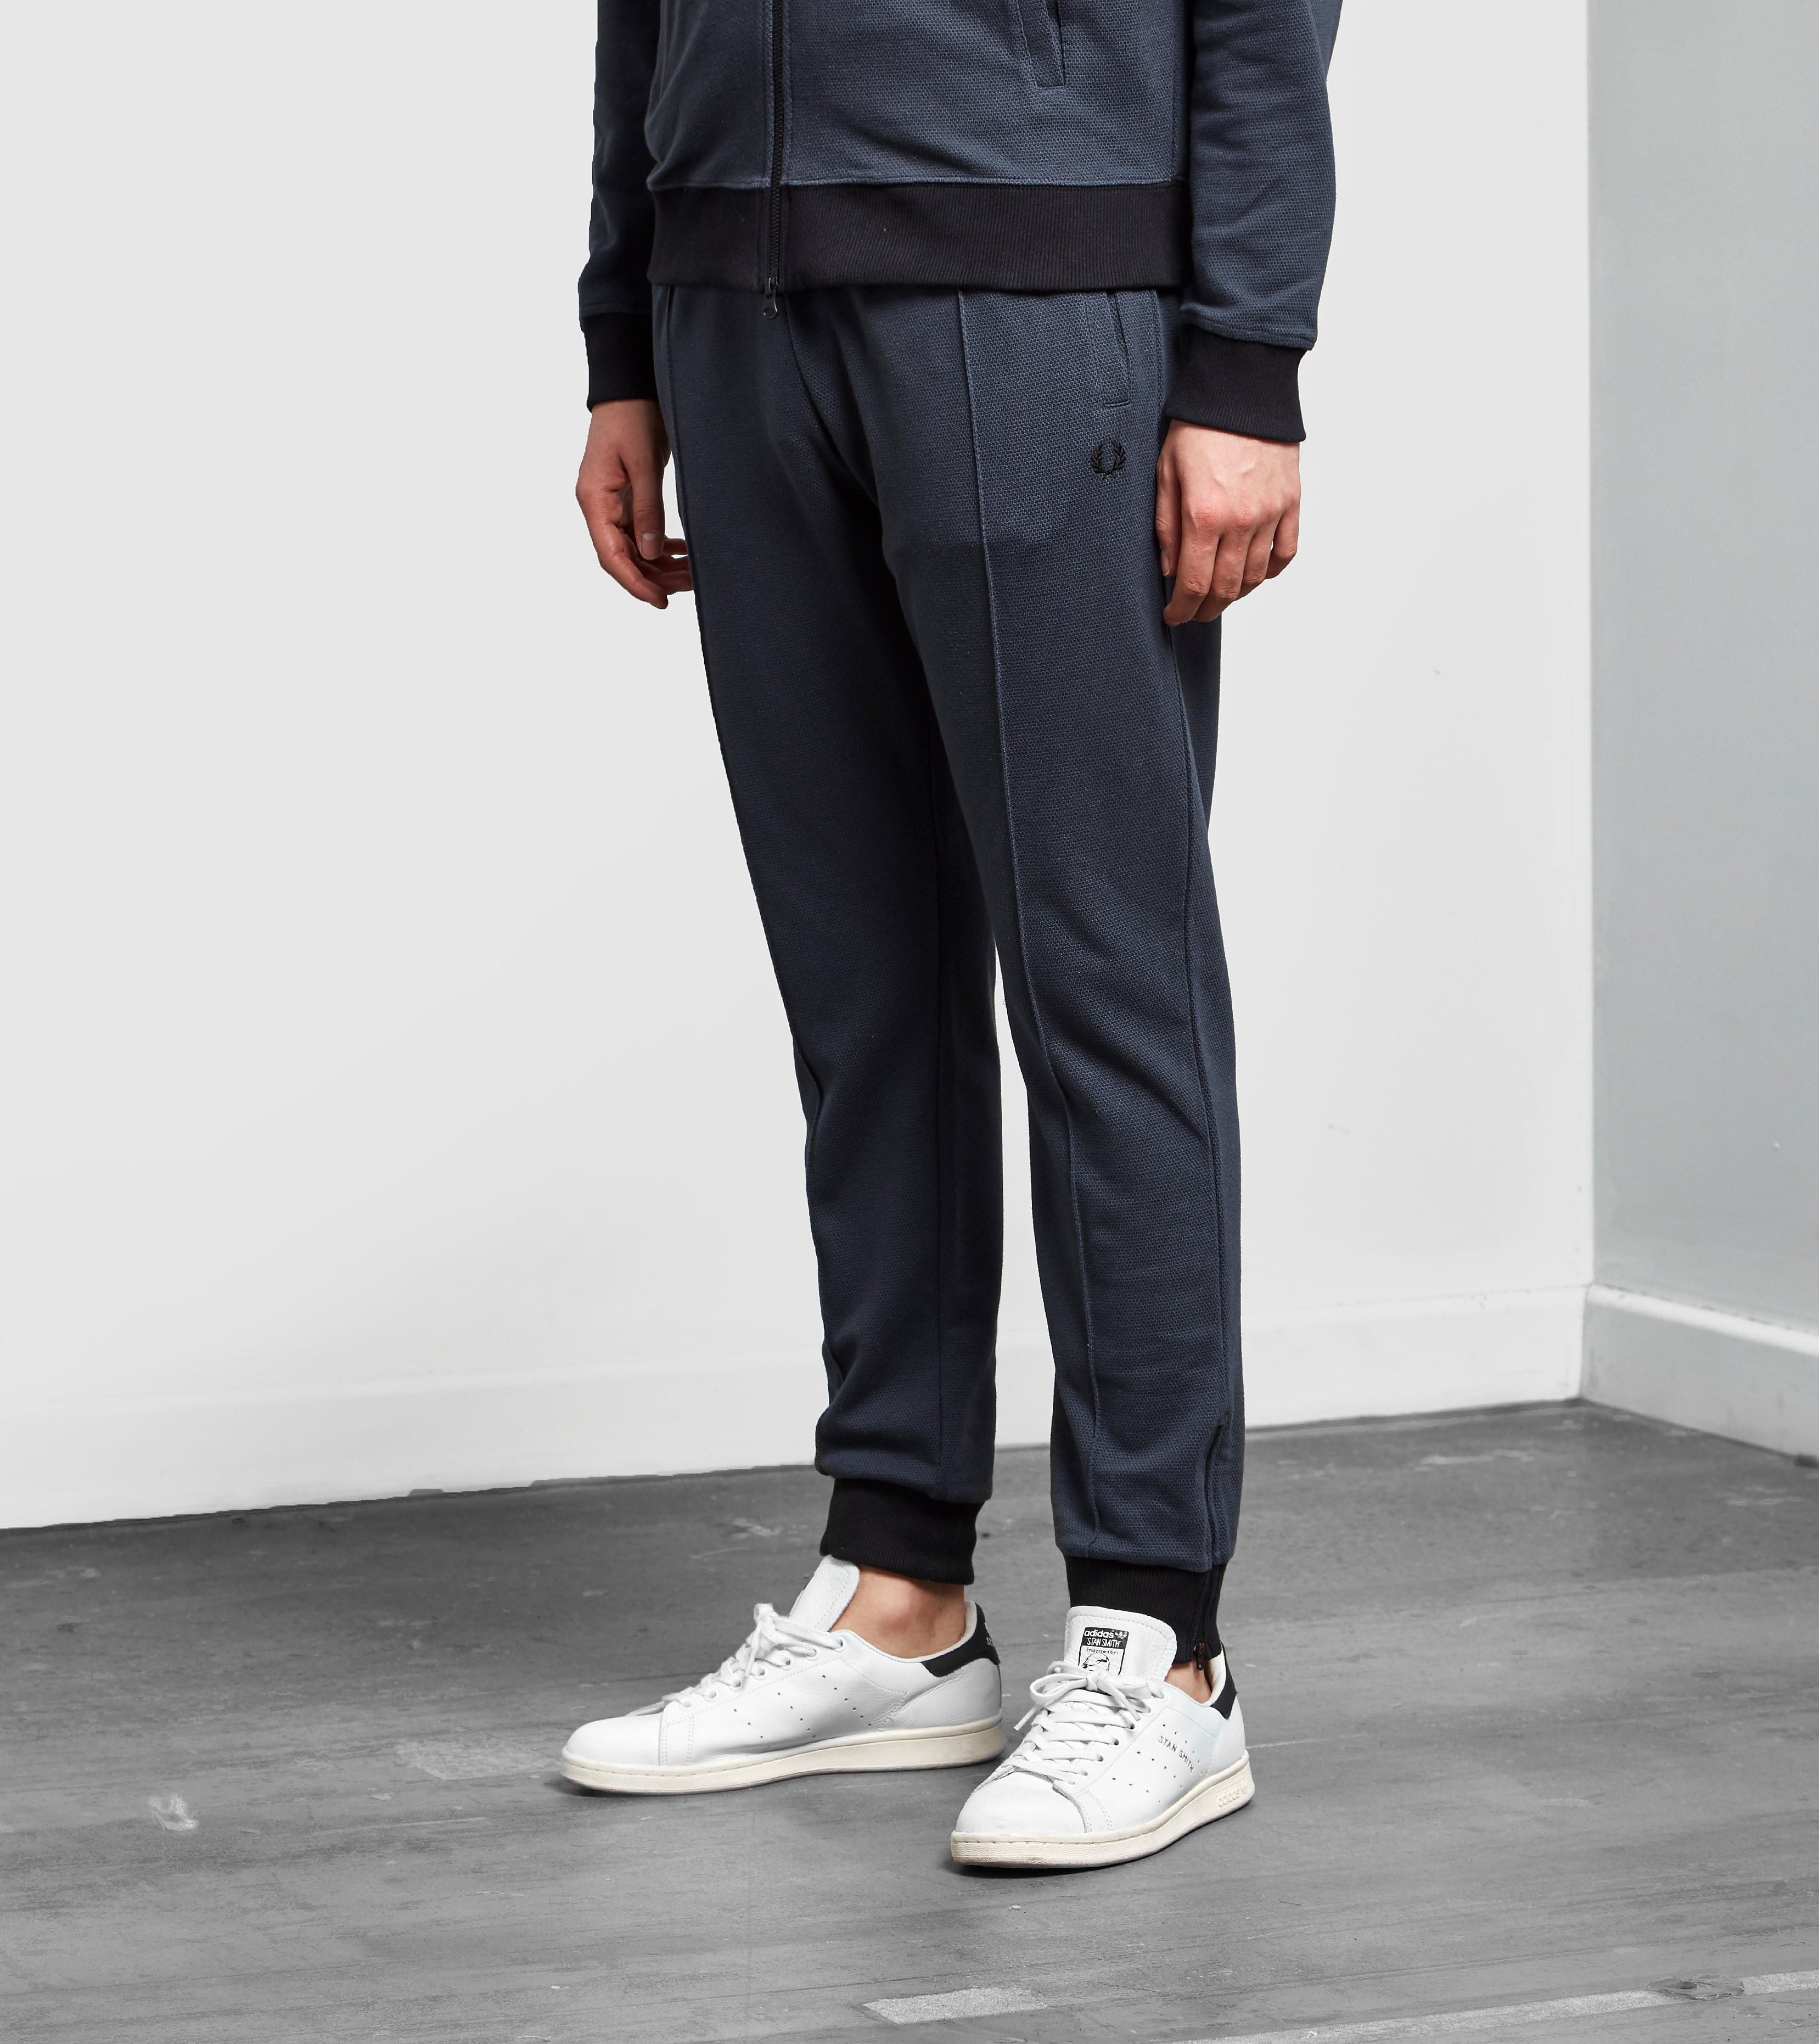 Fred Perry Pique Track Pants - size? Exclusive